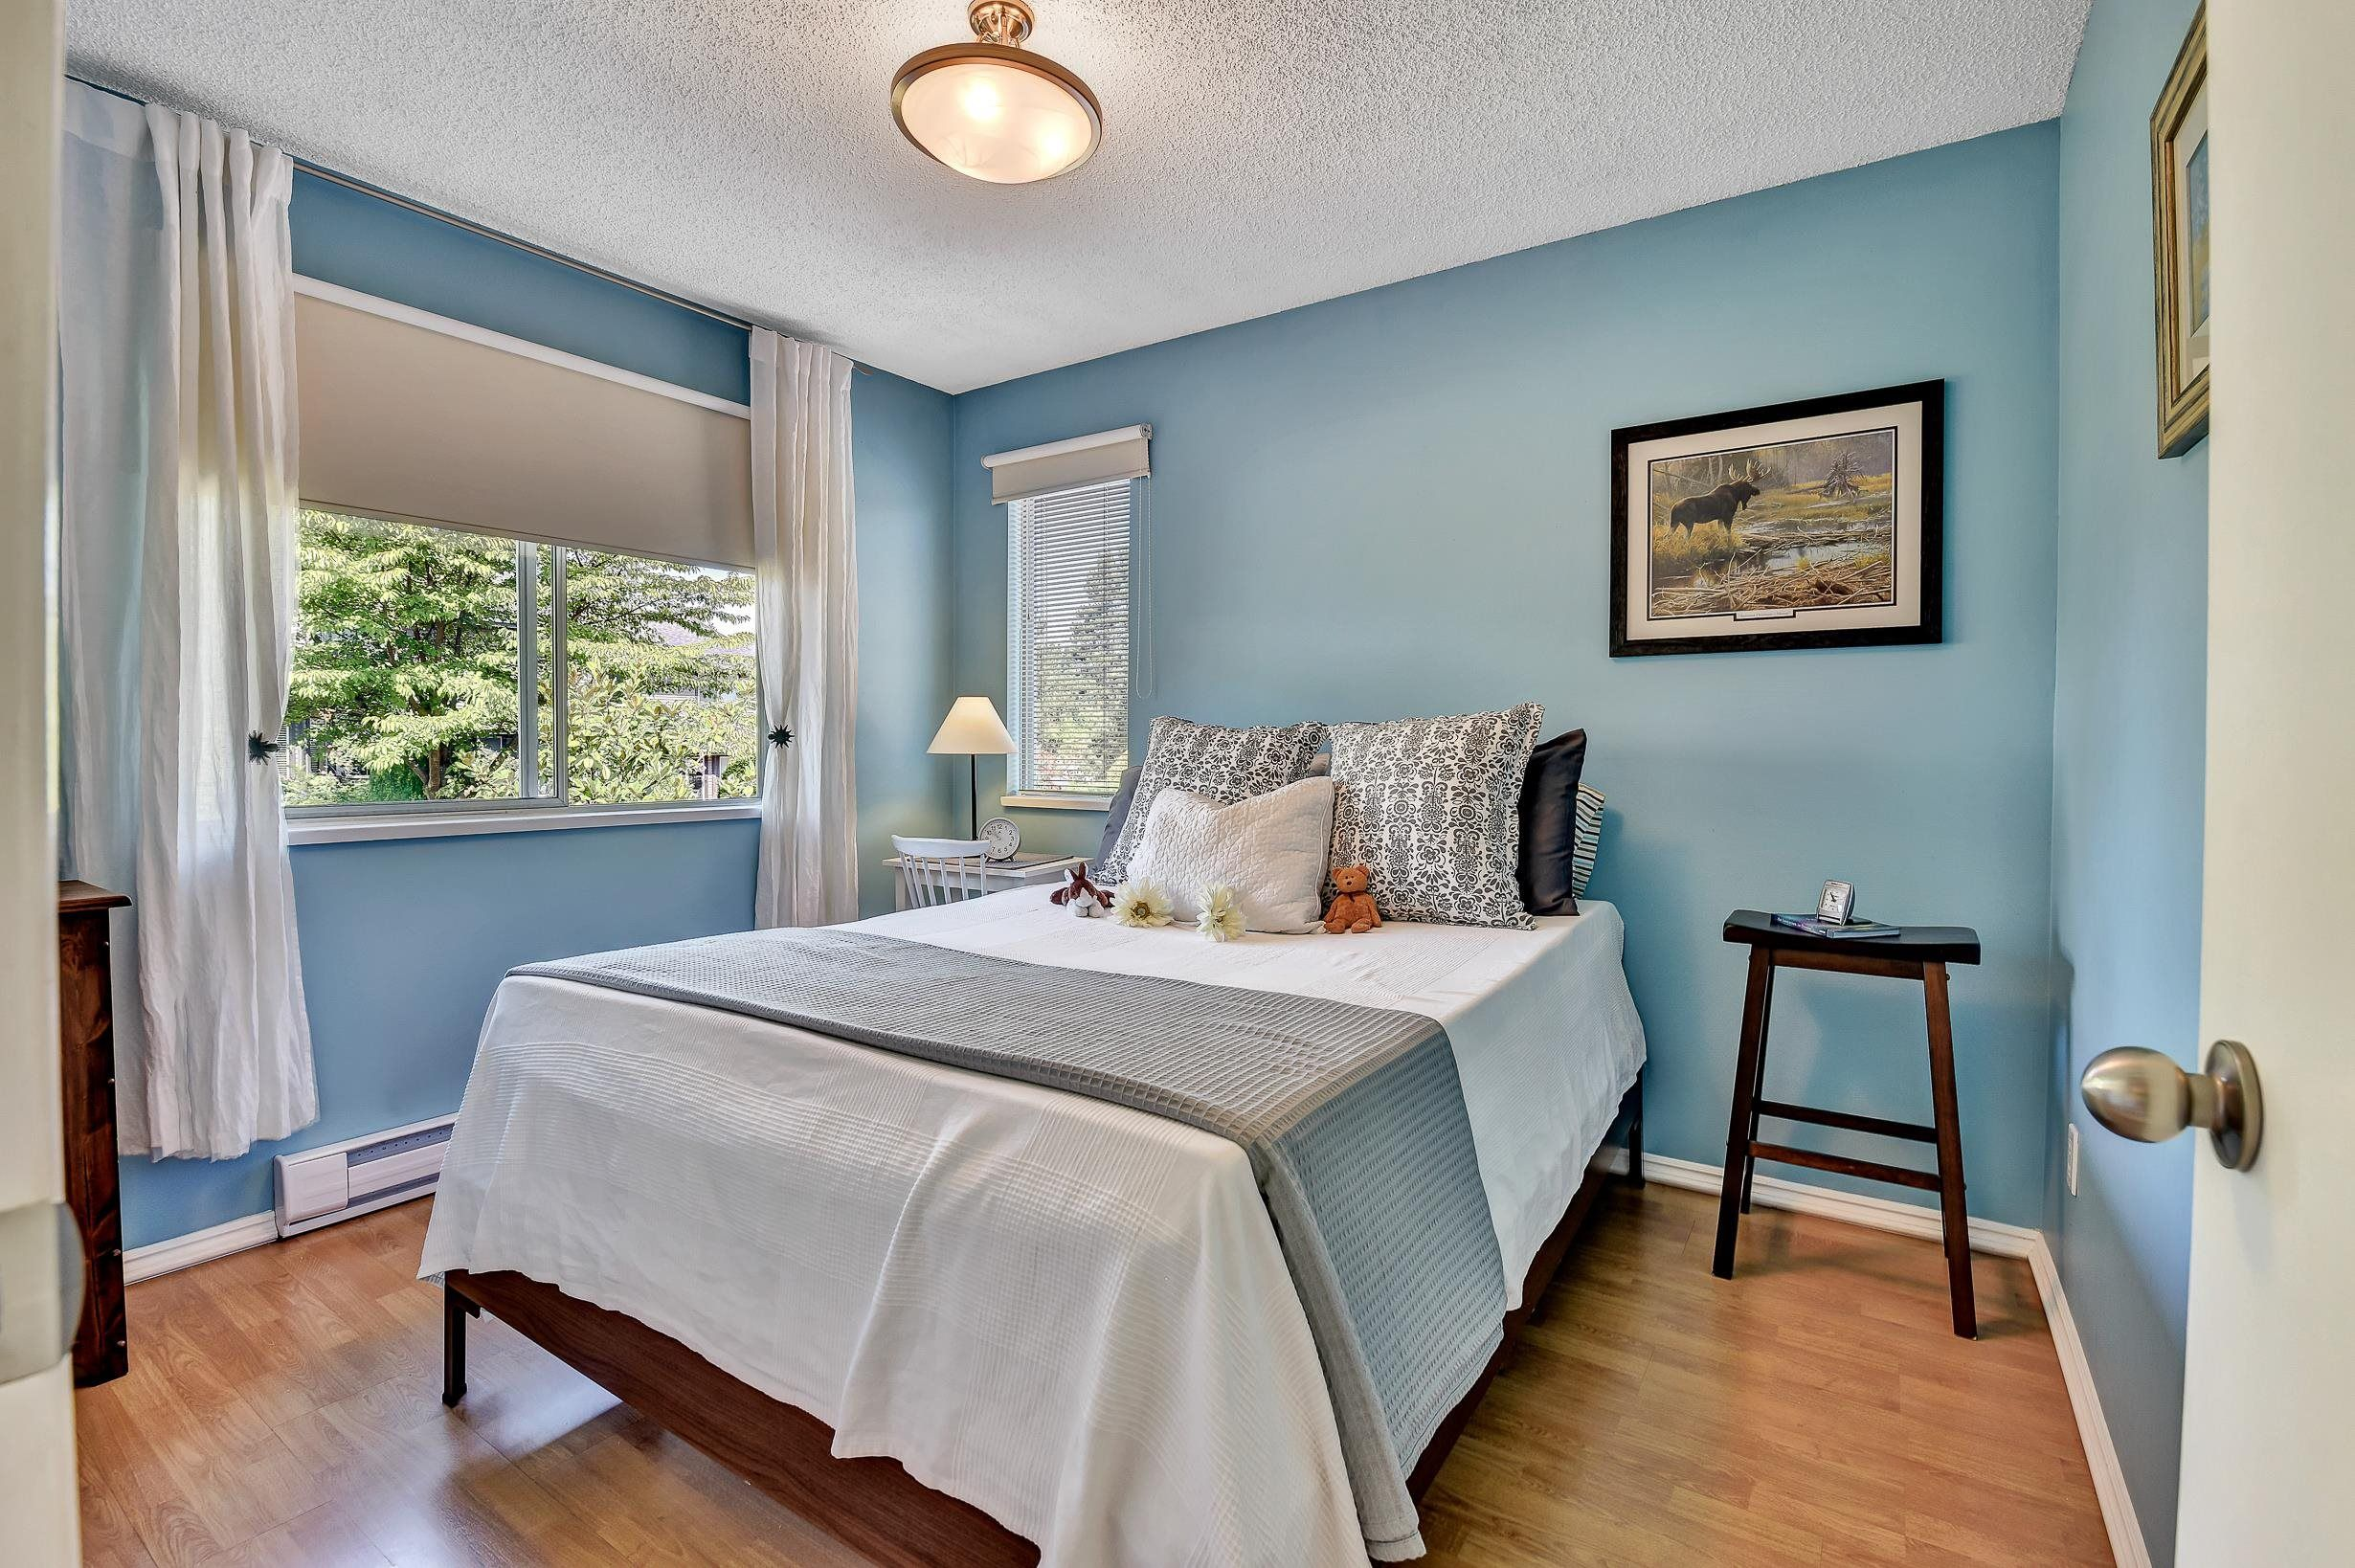 """Photo 17: Photos: 208 1140 CASTLE Crescent in Port Coquitlam: Citadel PQ Townhouse for sale in """"THE UPLANDS"""" : MLS®# R2609078"""